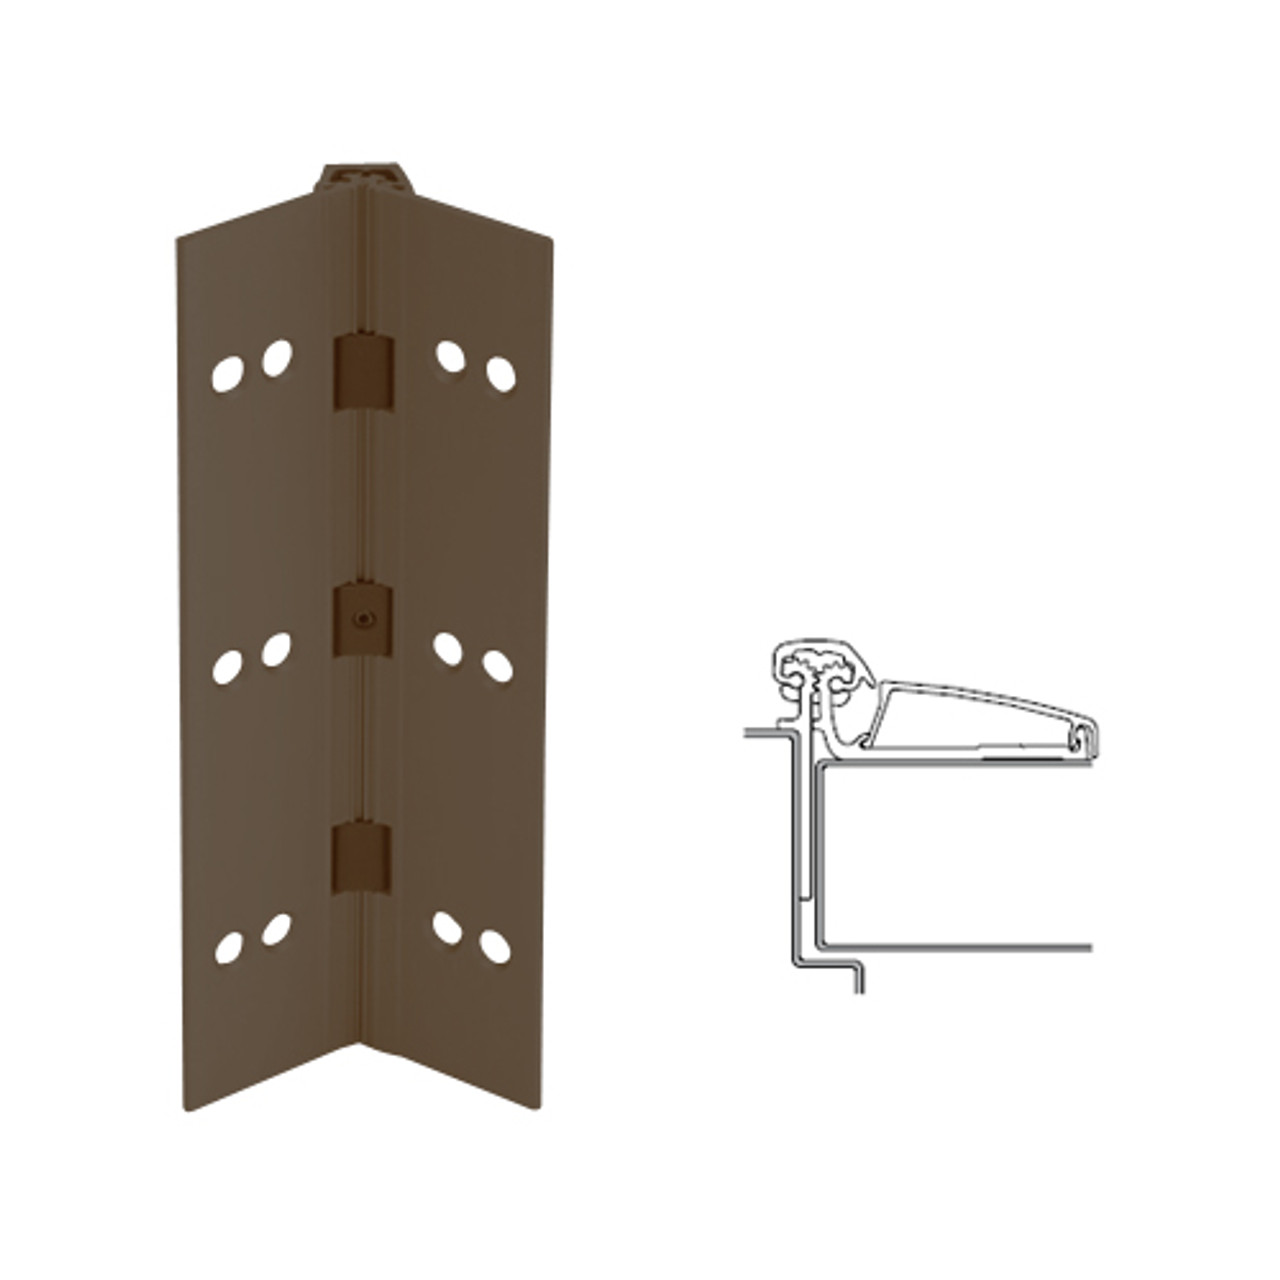 045XY-313AN-85 IVES Adjustable Half Surface Continuous Geared Hinges in Dark Bronze Anodized